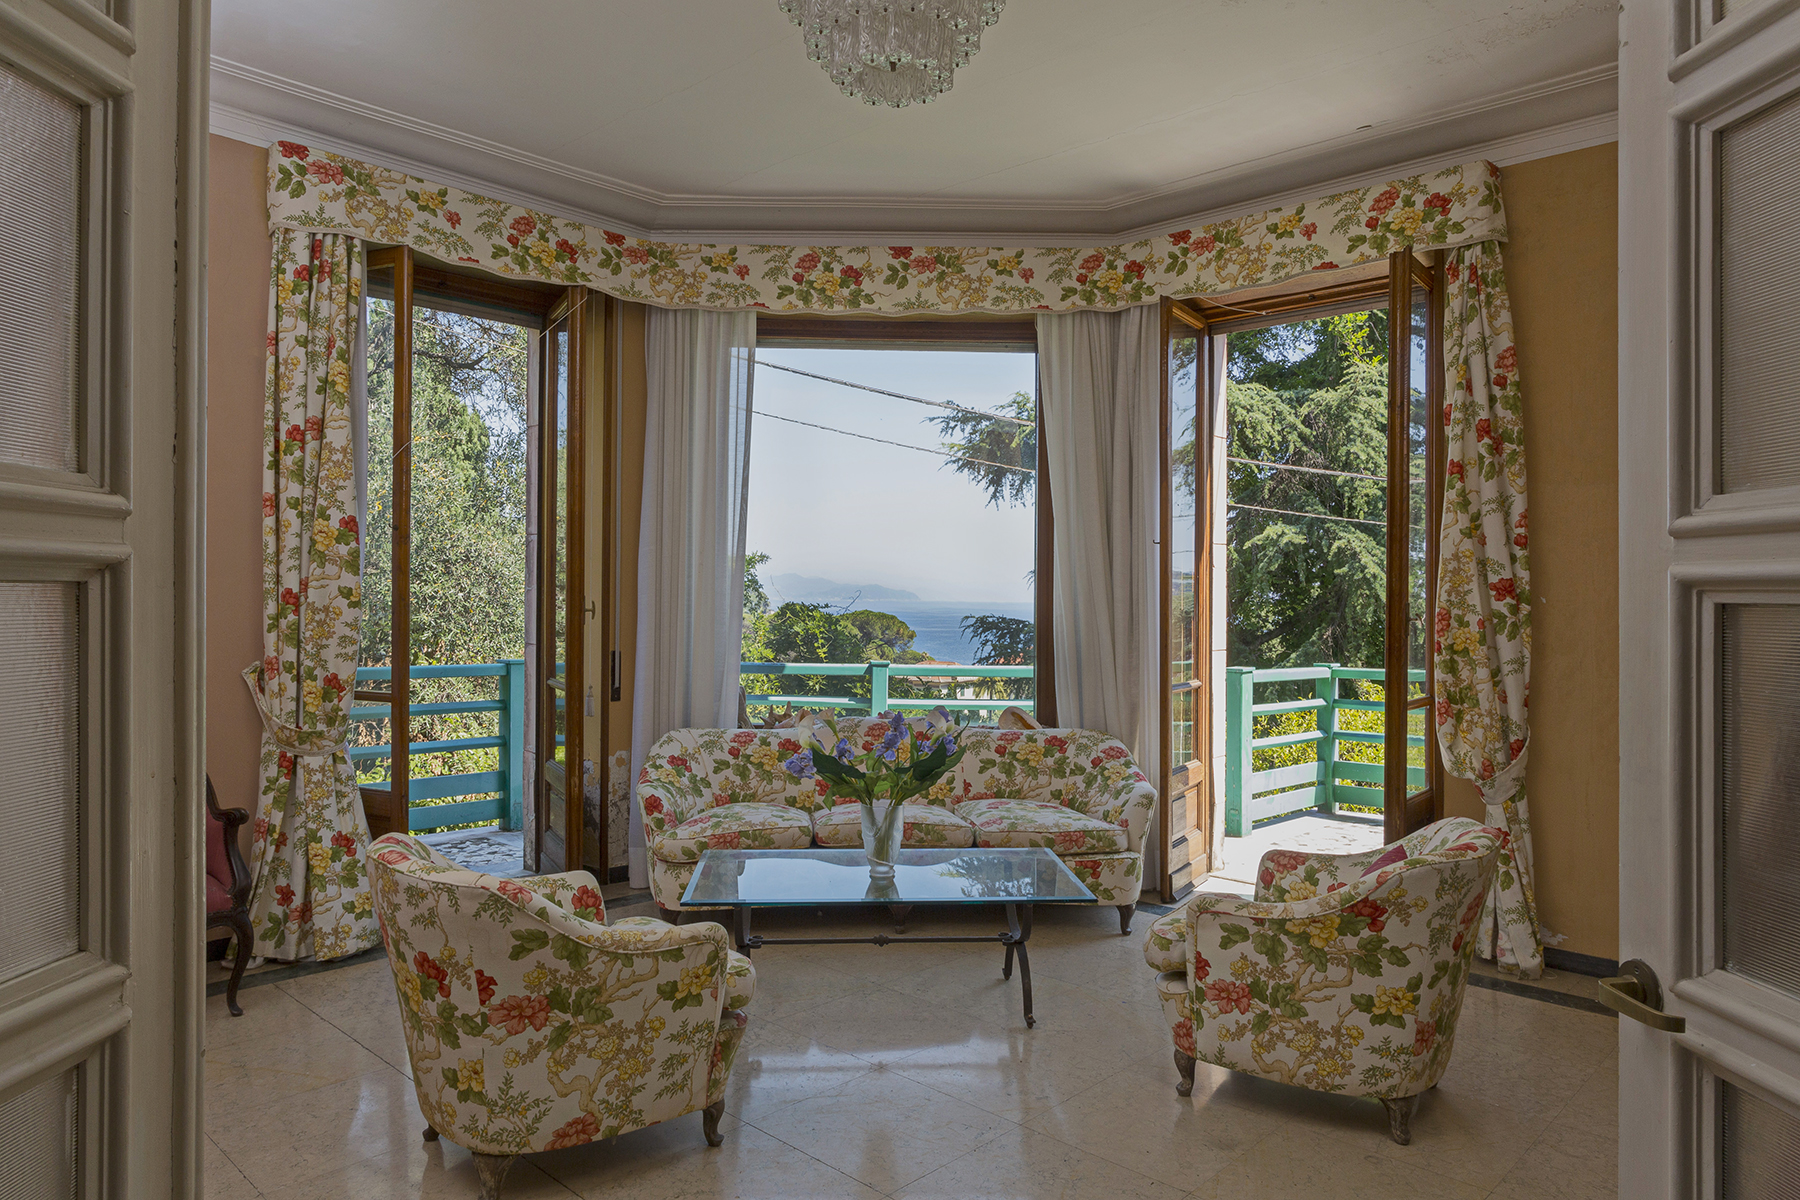 Single Family Home for Sale at Exquisite villa with private garden and amazing sea view Santa Margherita Ligure, Italy